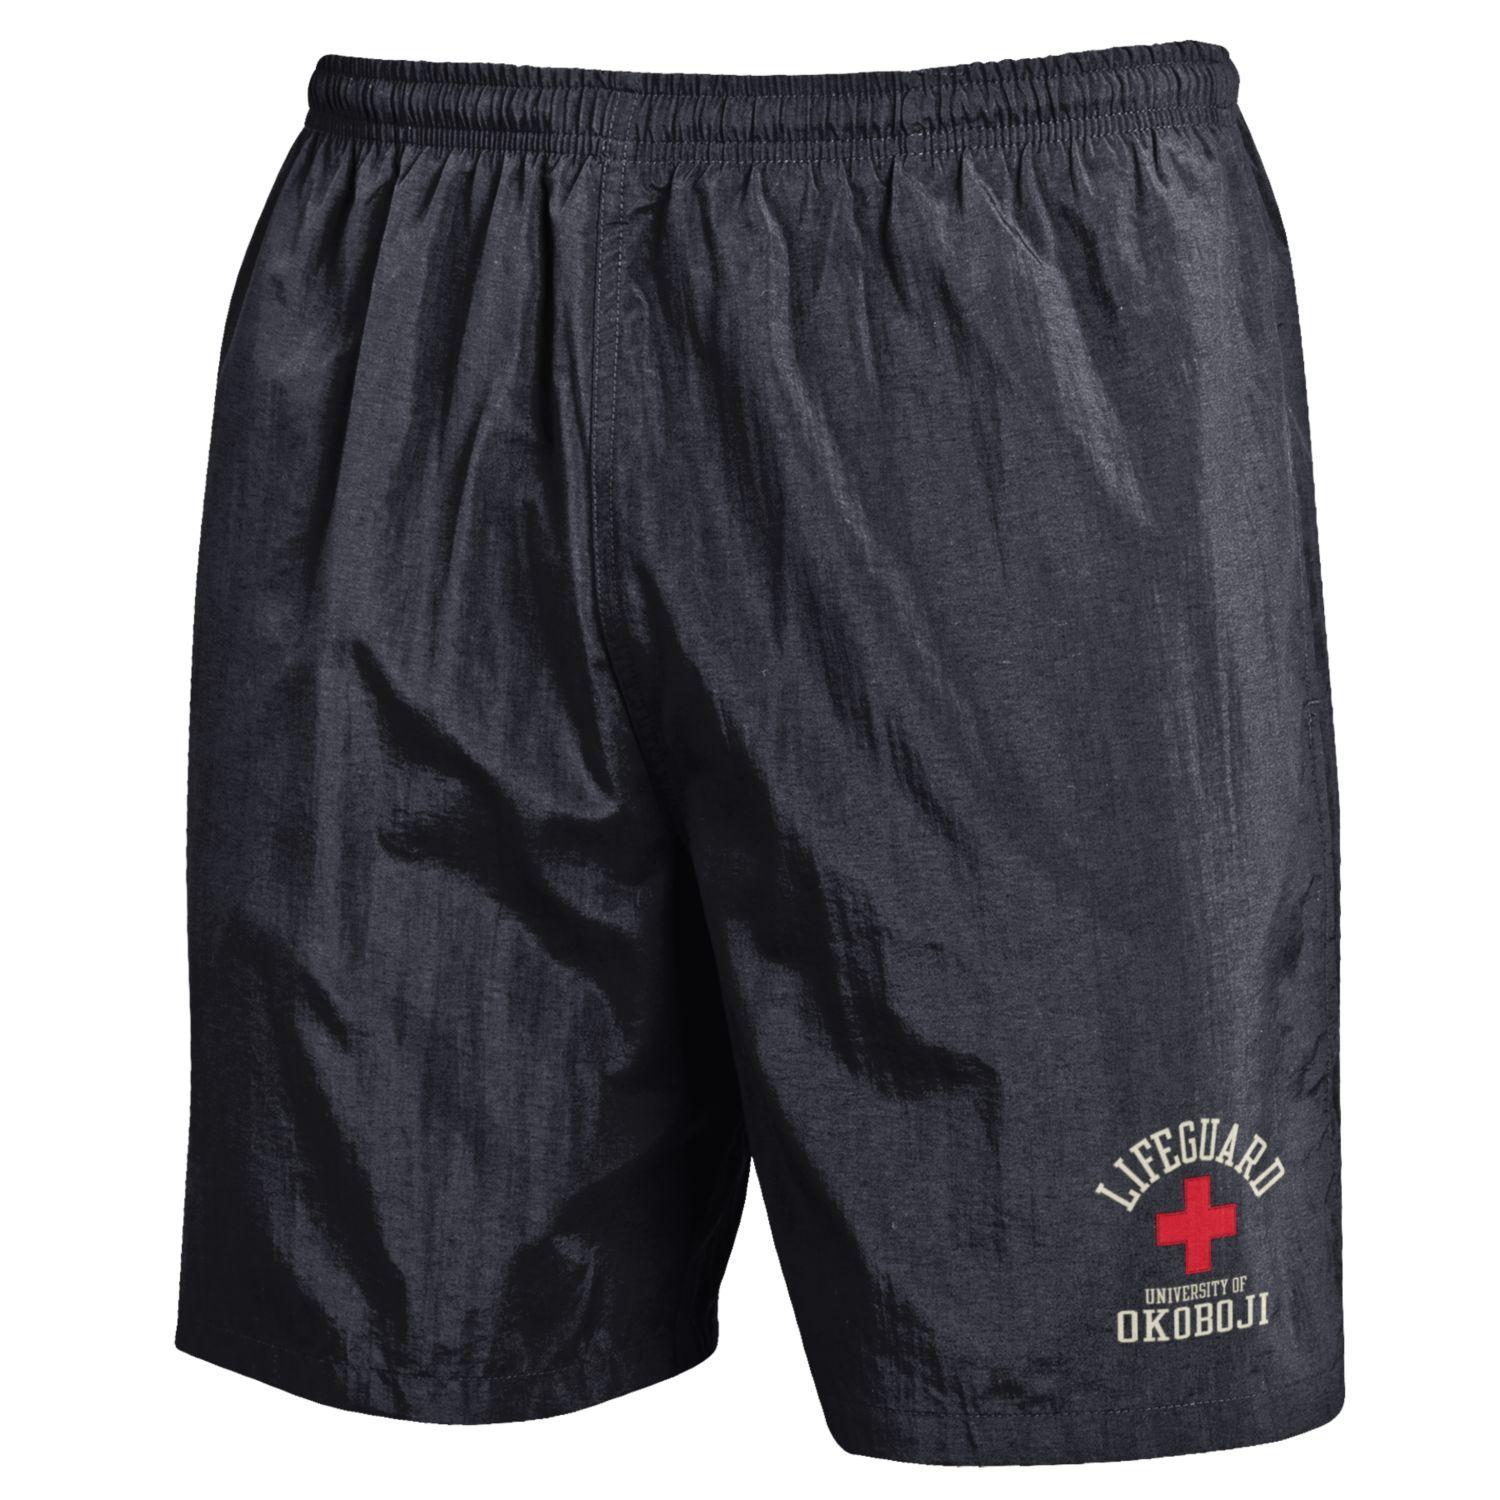 U of Okoboji Life Guard Trunks - Black